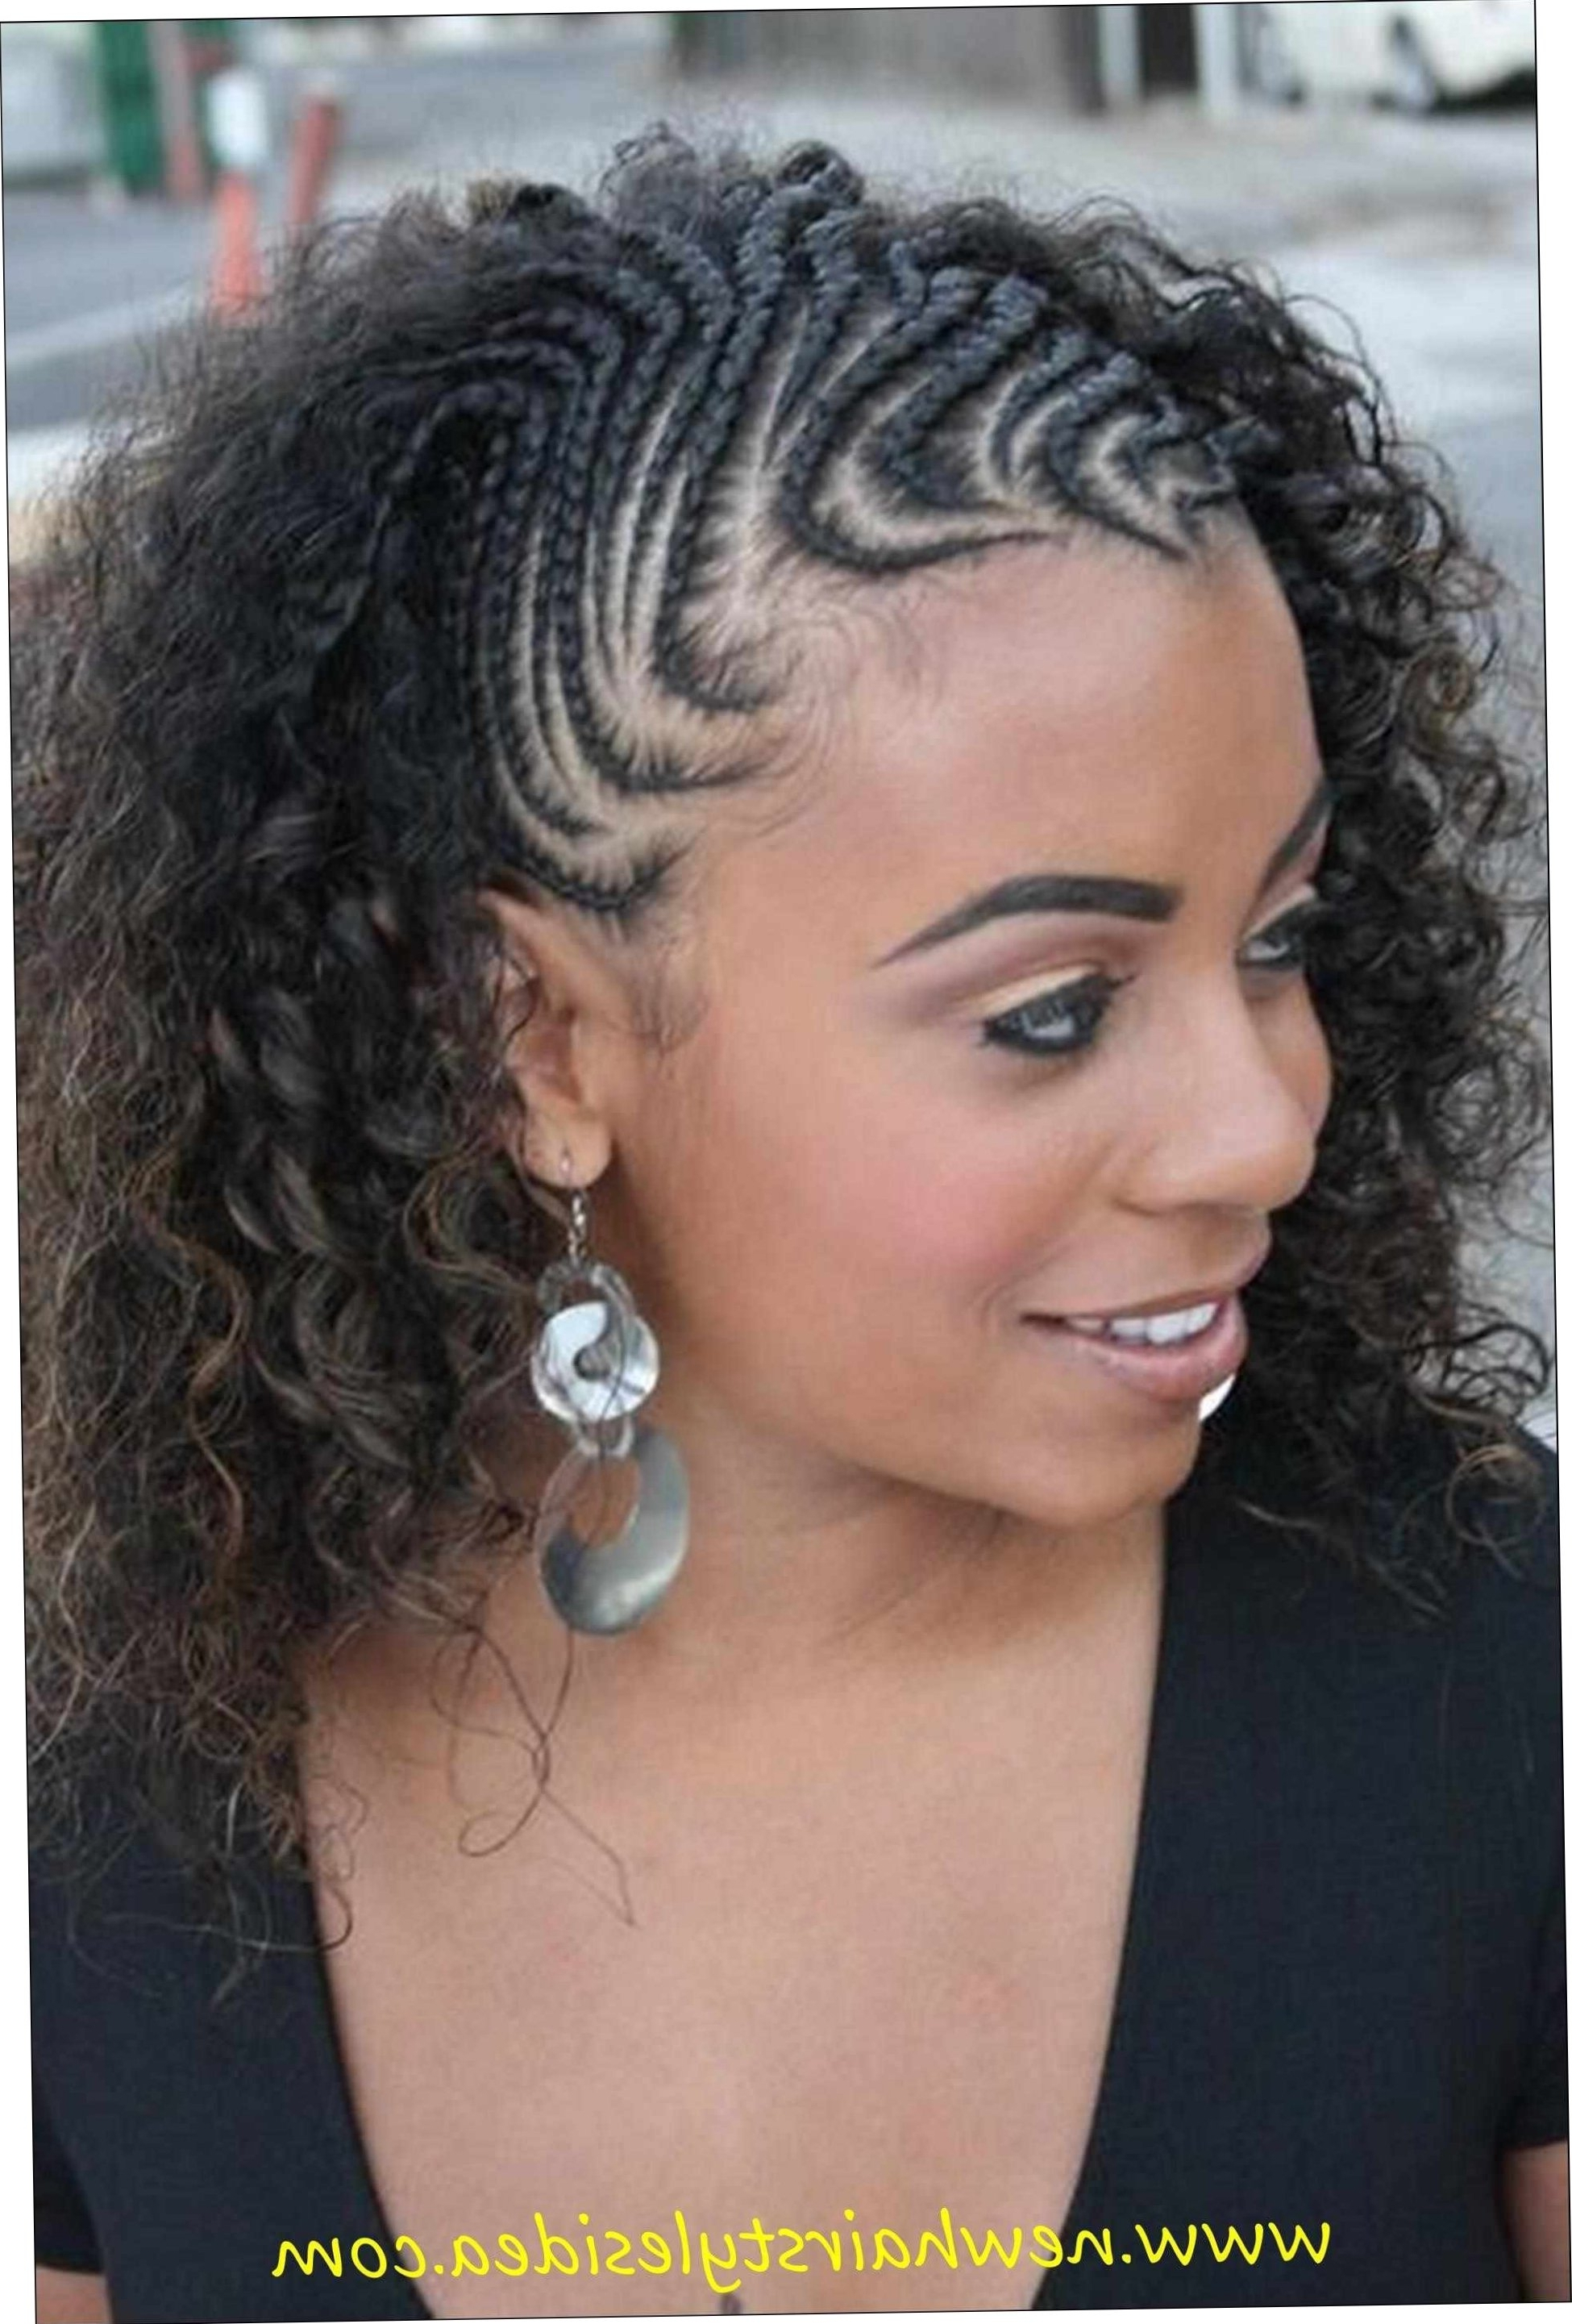 Fashionable Braided Hairstyles For Round Faces Inside Oval Faces Cornrow Hairstyles Round Face Black Women Braided For (View 8 of 15)